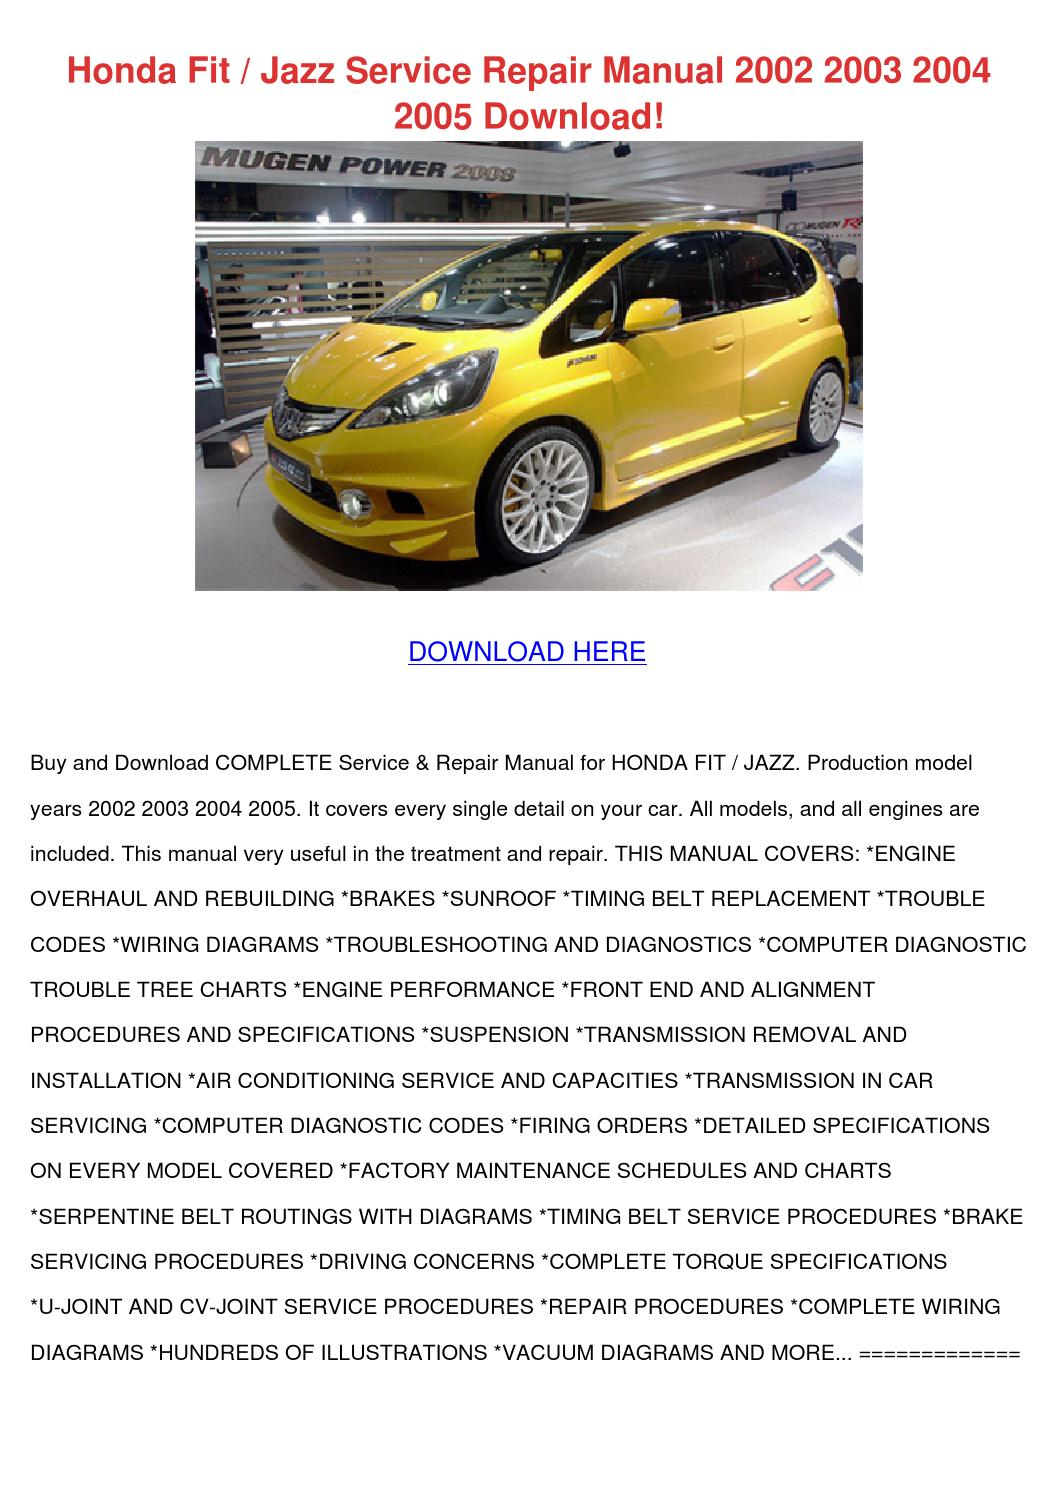 Honda Fit Jazz Service Repair Manual 2002 2003 2004 2005 Download By Wiring Diagram Daniel Issuu